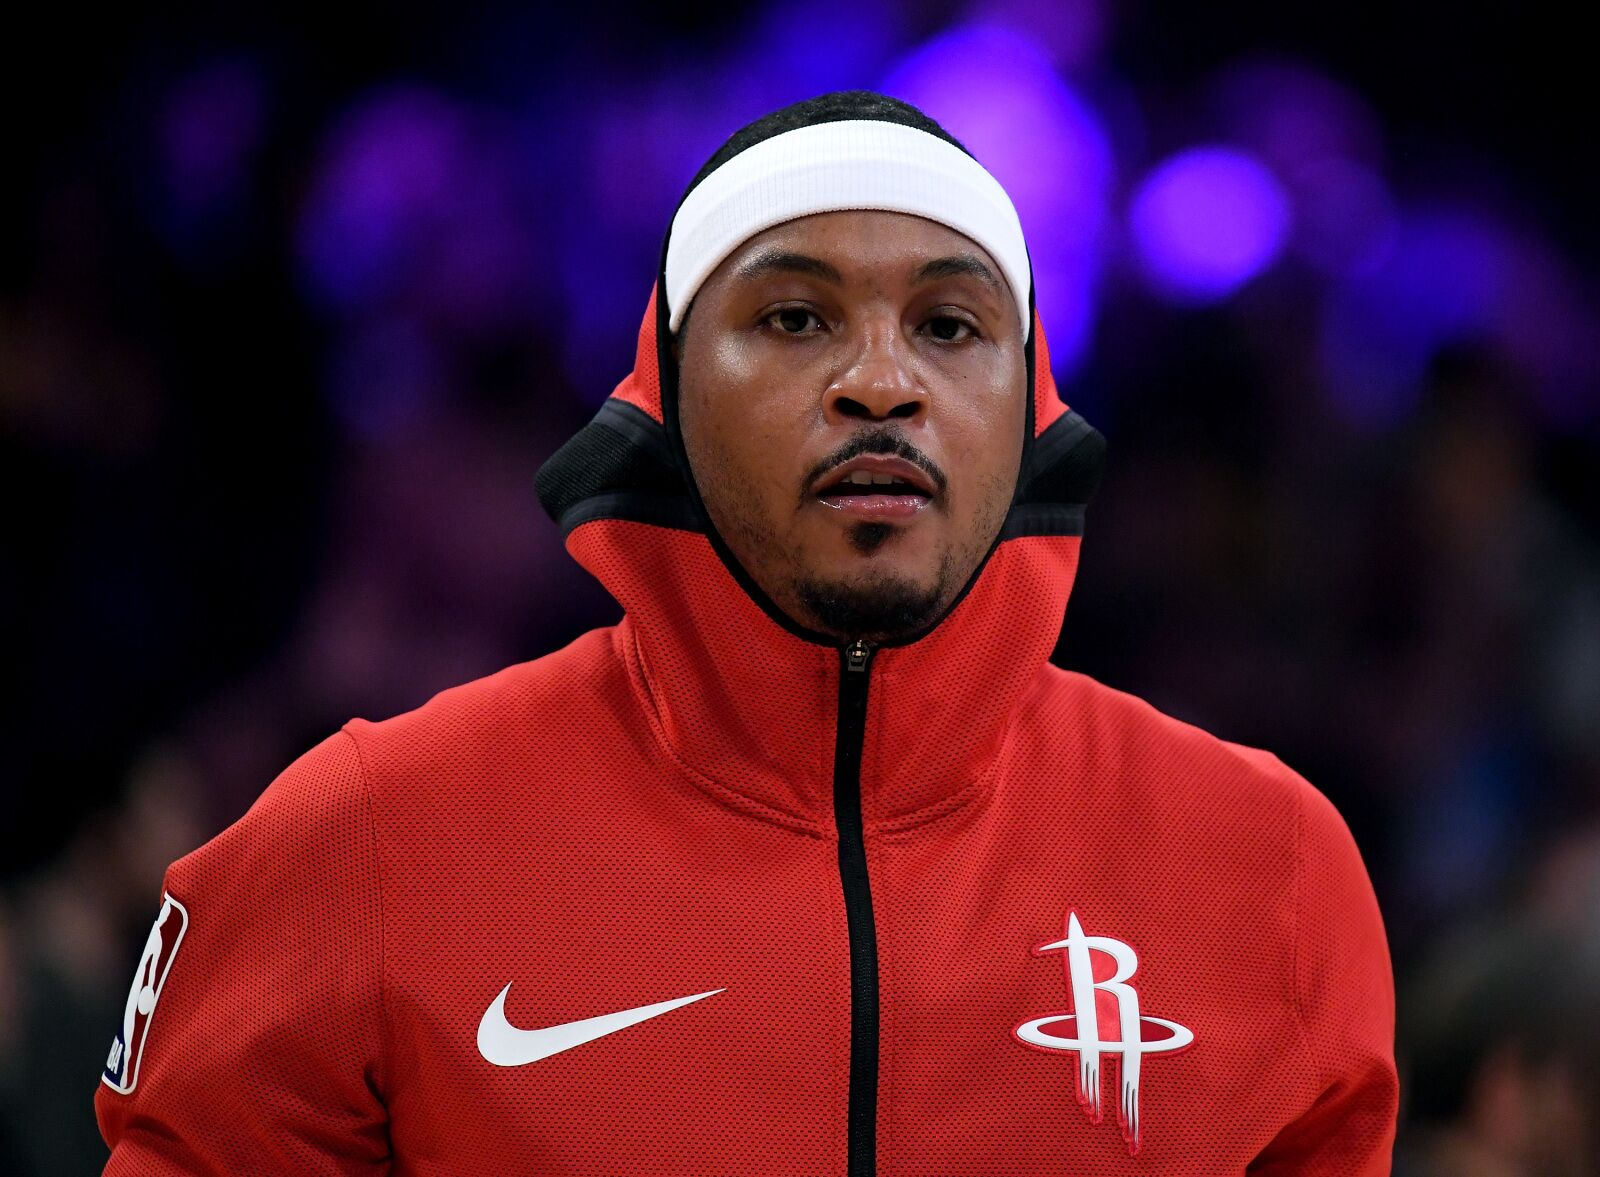 Carmelo Anthony is the latest victim of controversial players fading out of NBA